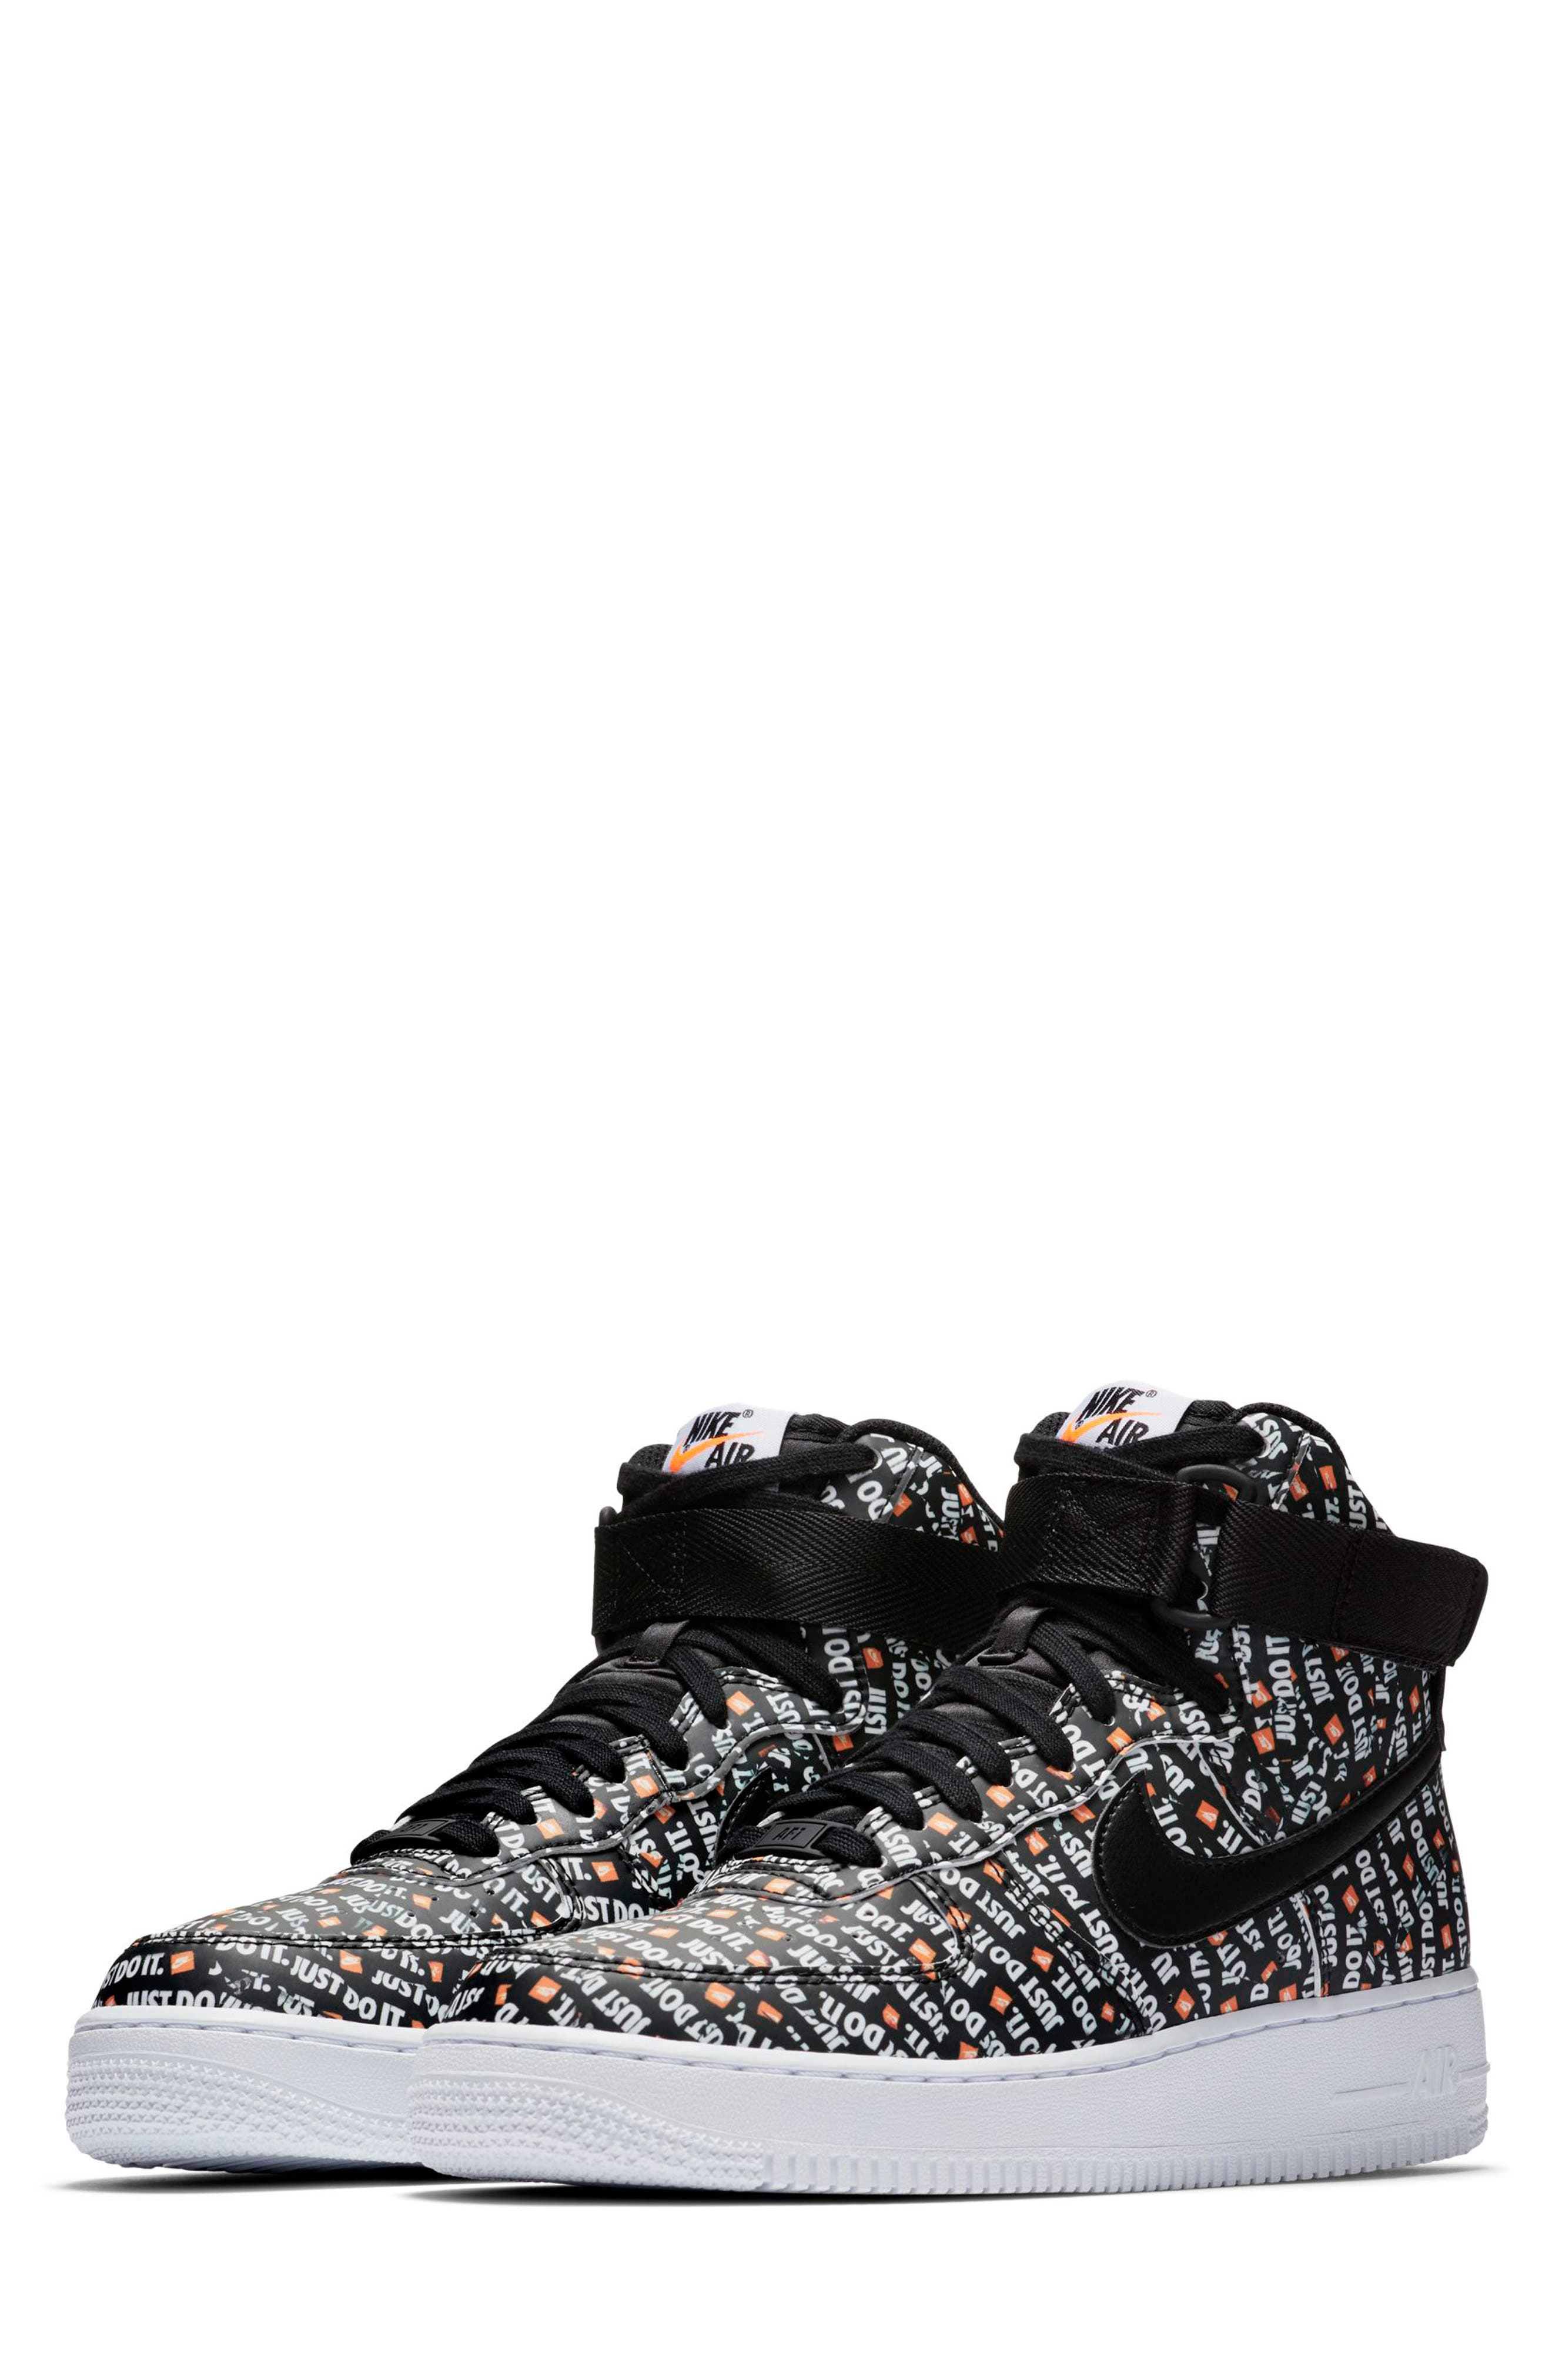 WOMEN'S AIR FORCE 1 HIGH LX CASUAL SHOES, BLACK